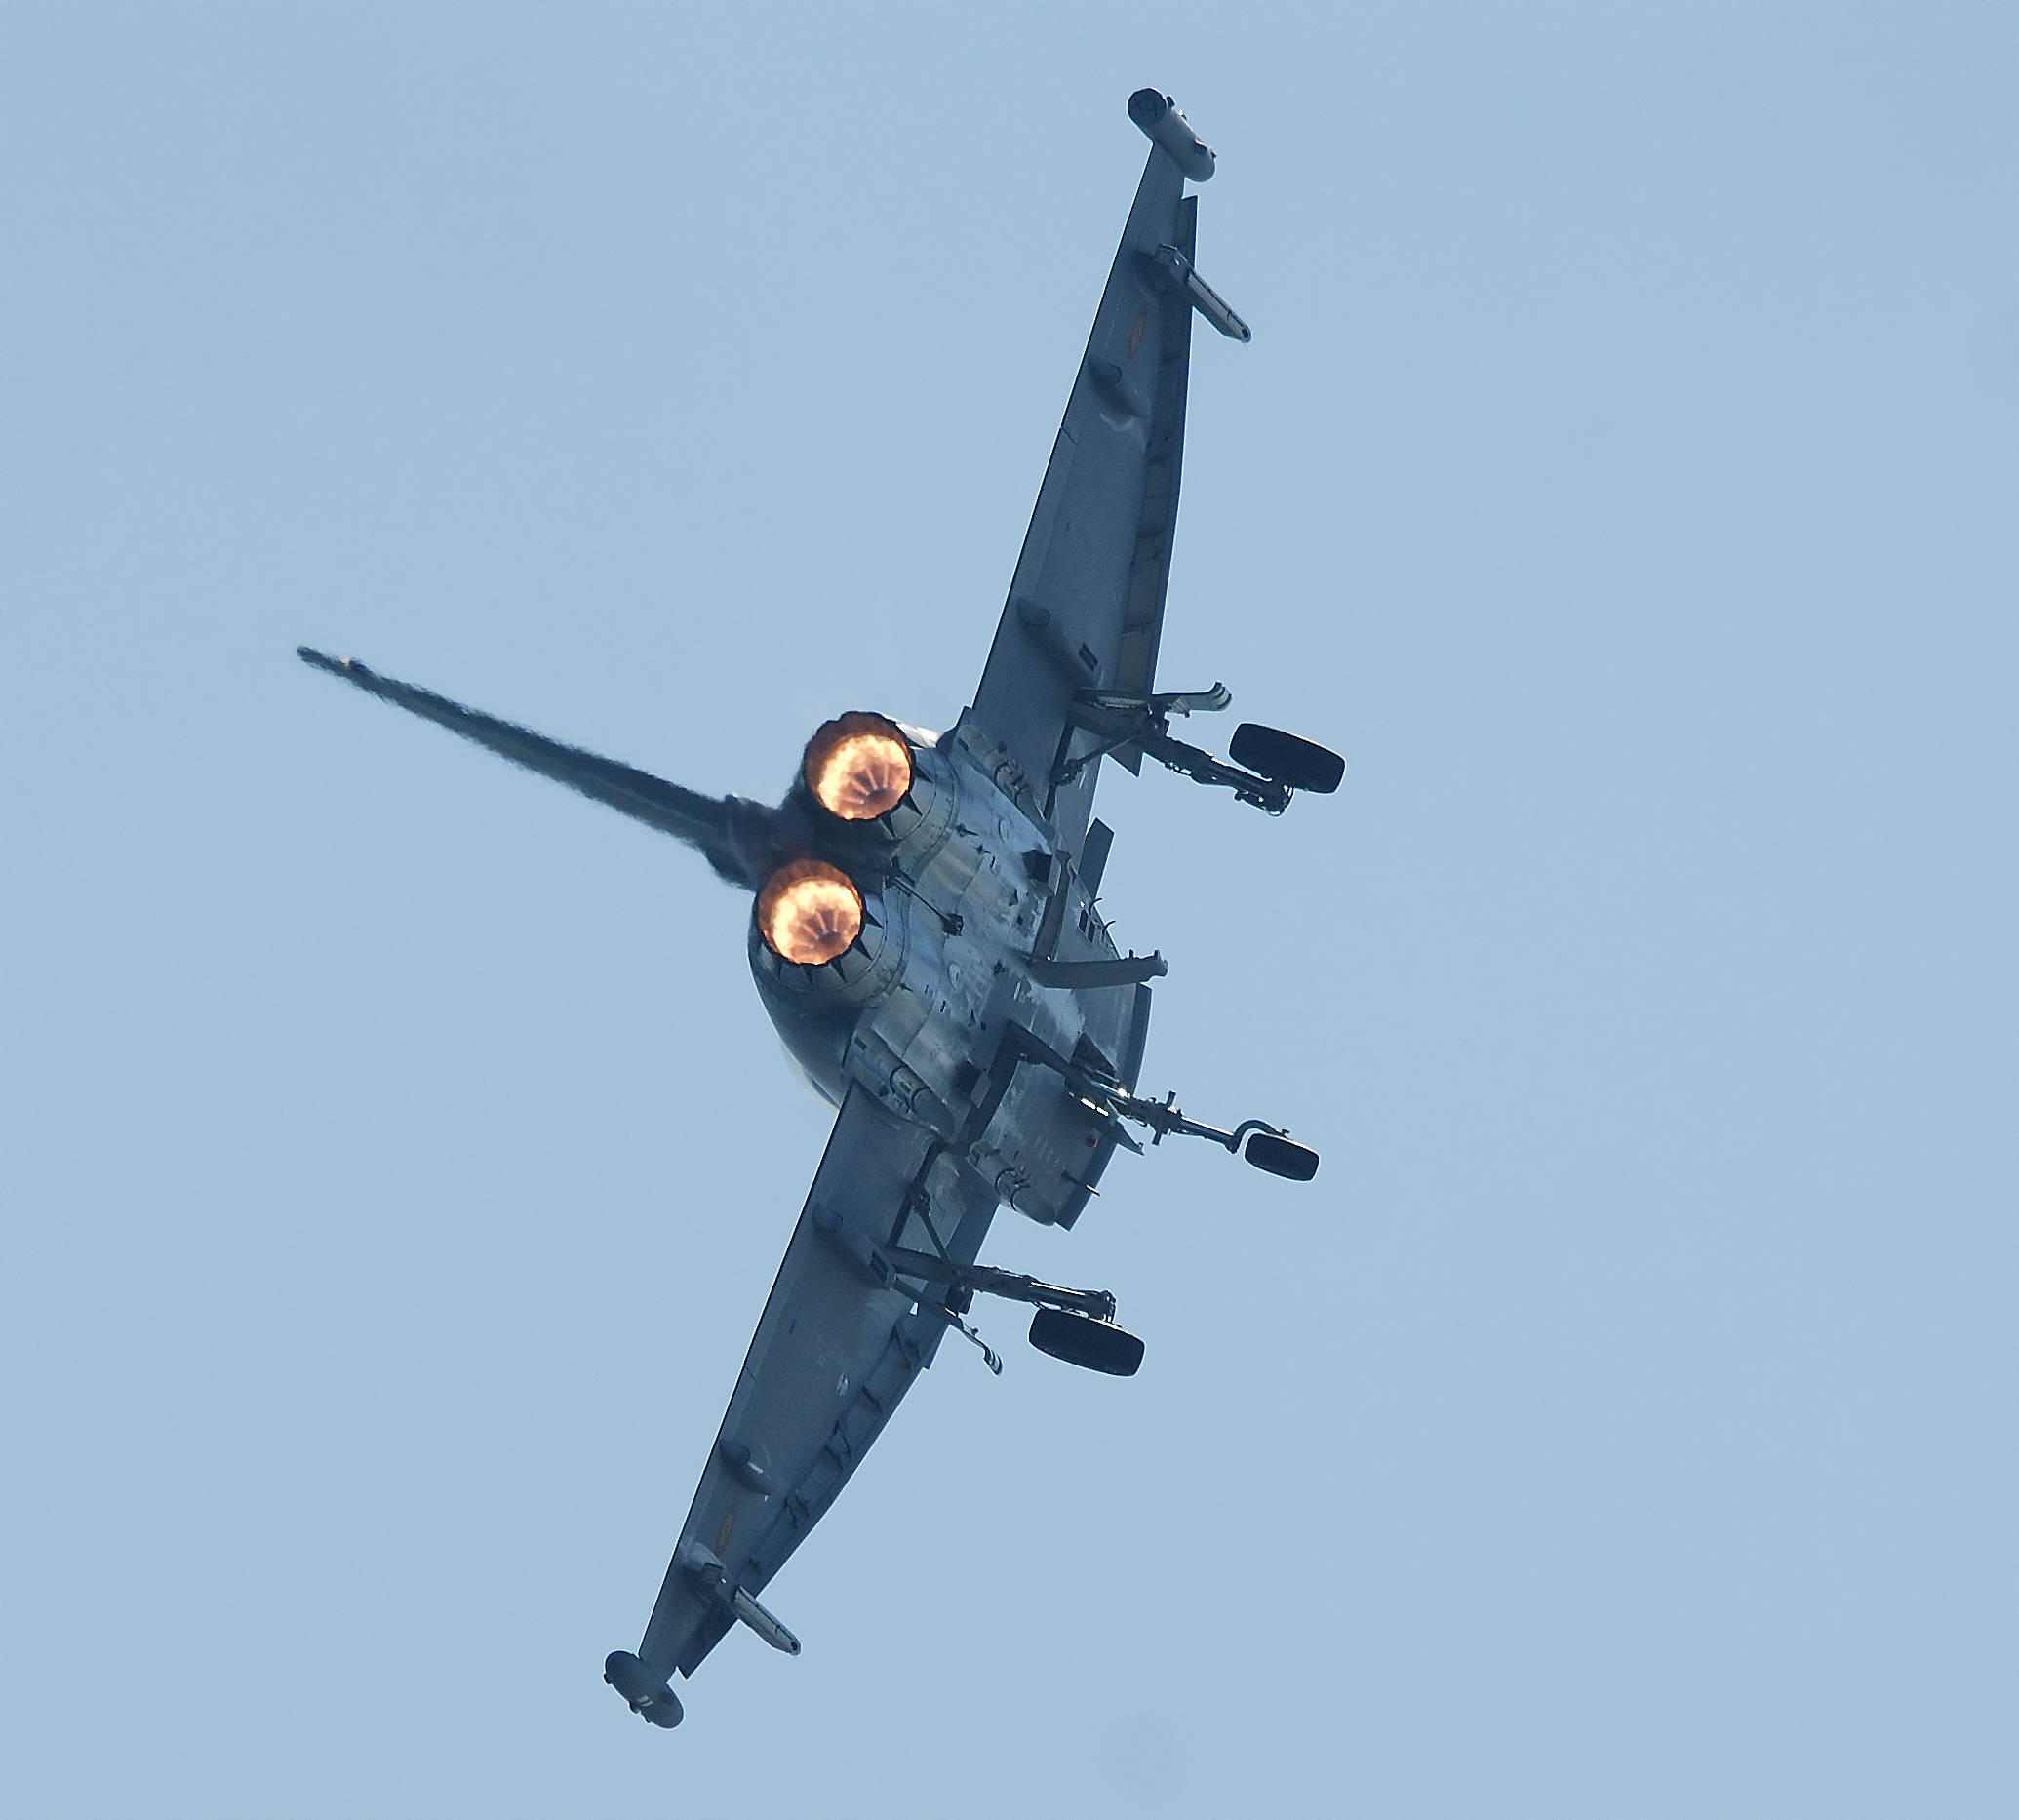 Spanish Eurofighter Typhoon